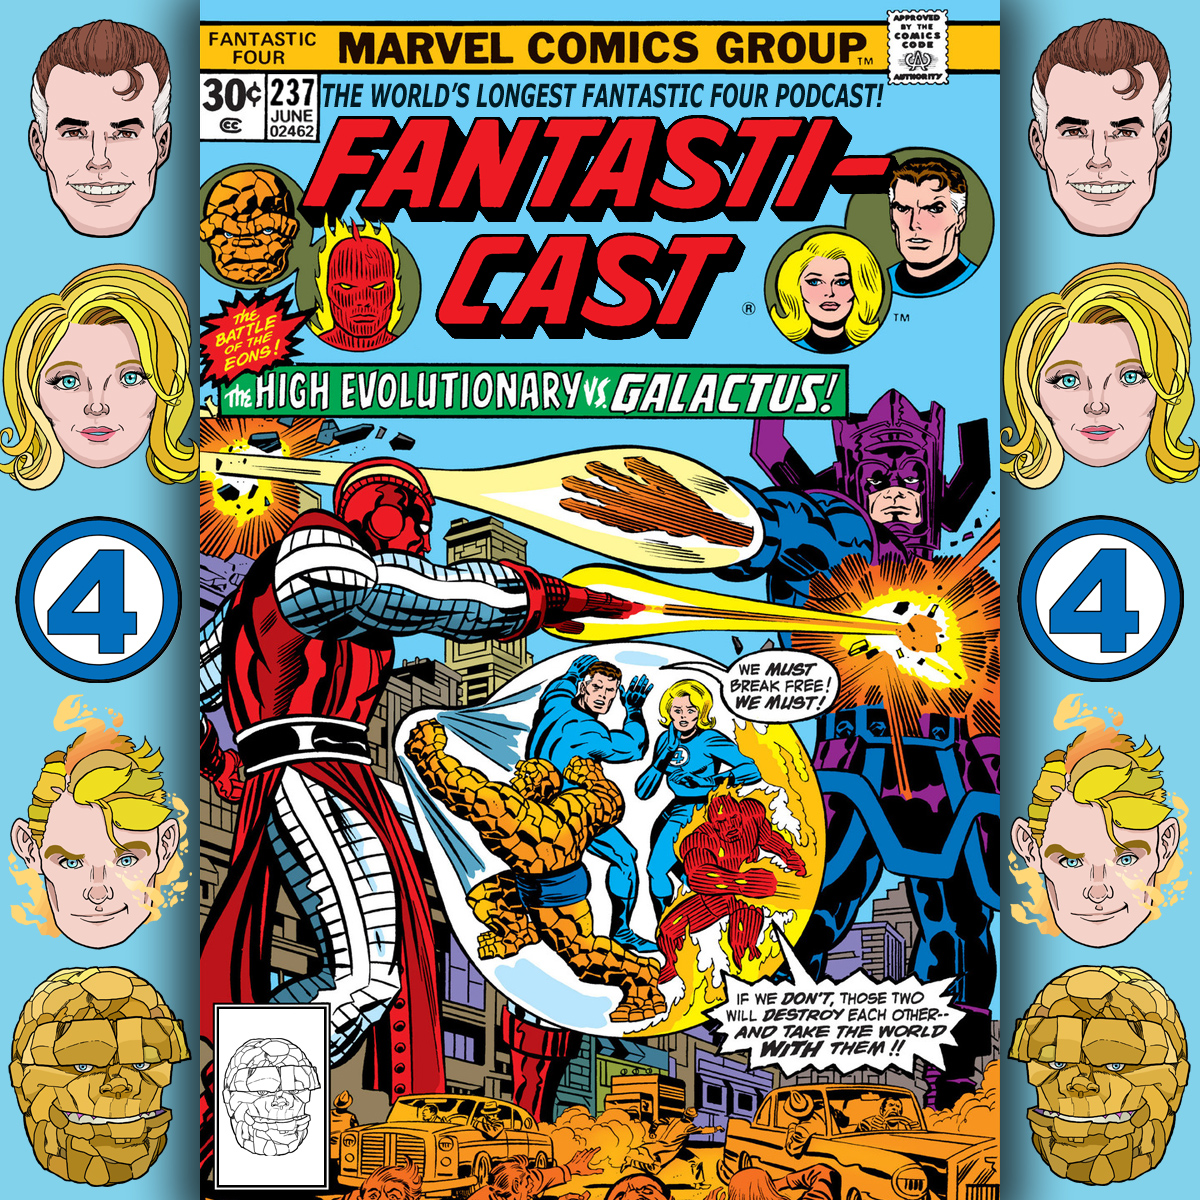 The Fantasticast Episode 237